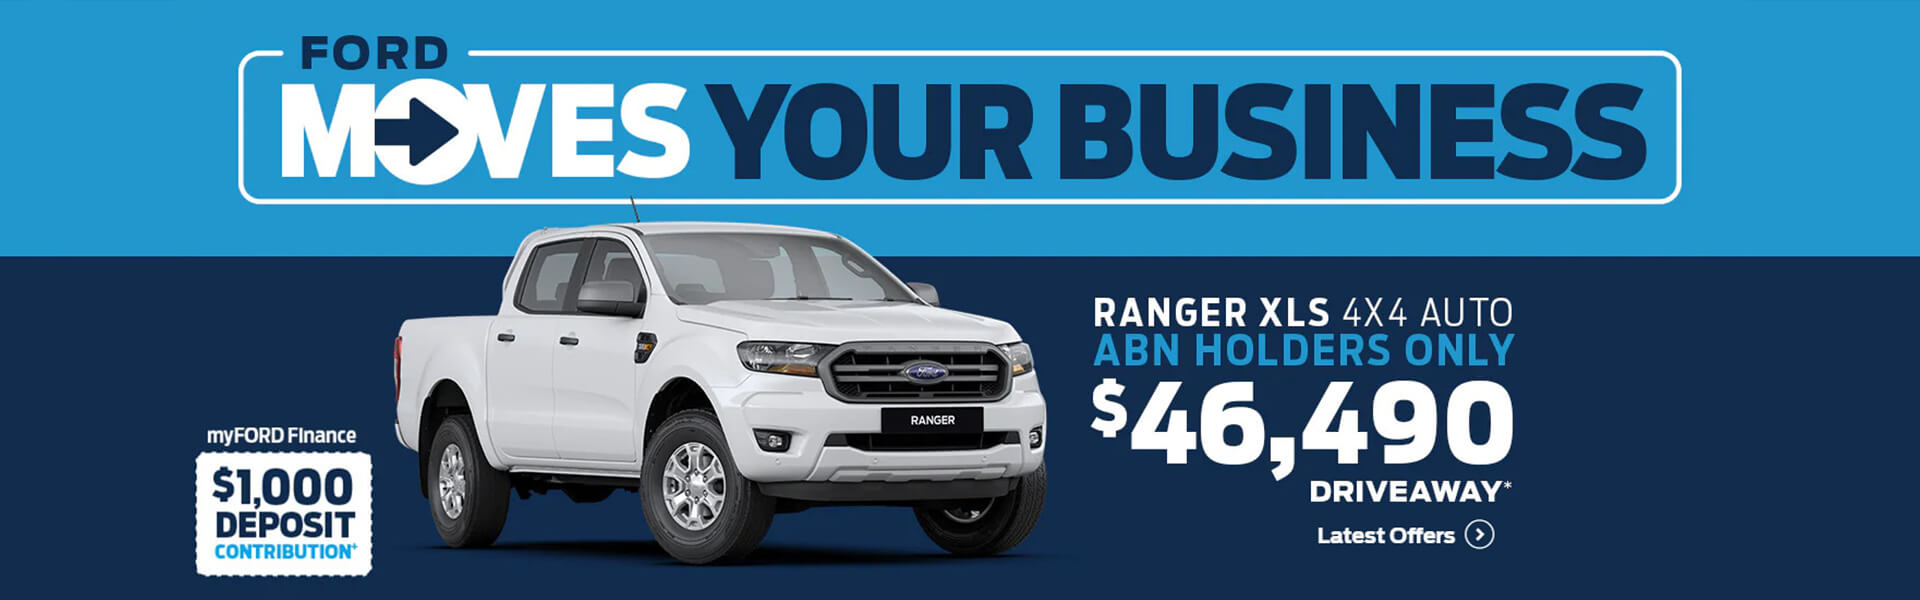 Ford moves your business. Ranger XLS 4x4 Auto